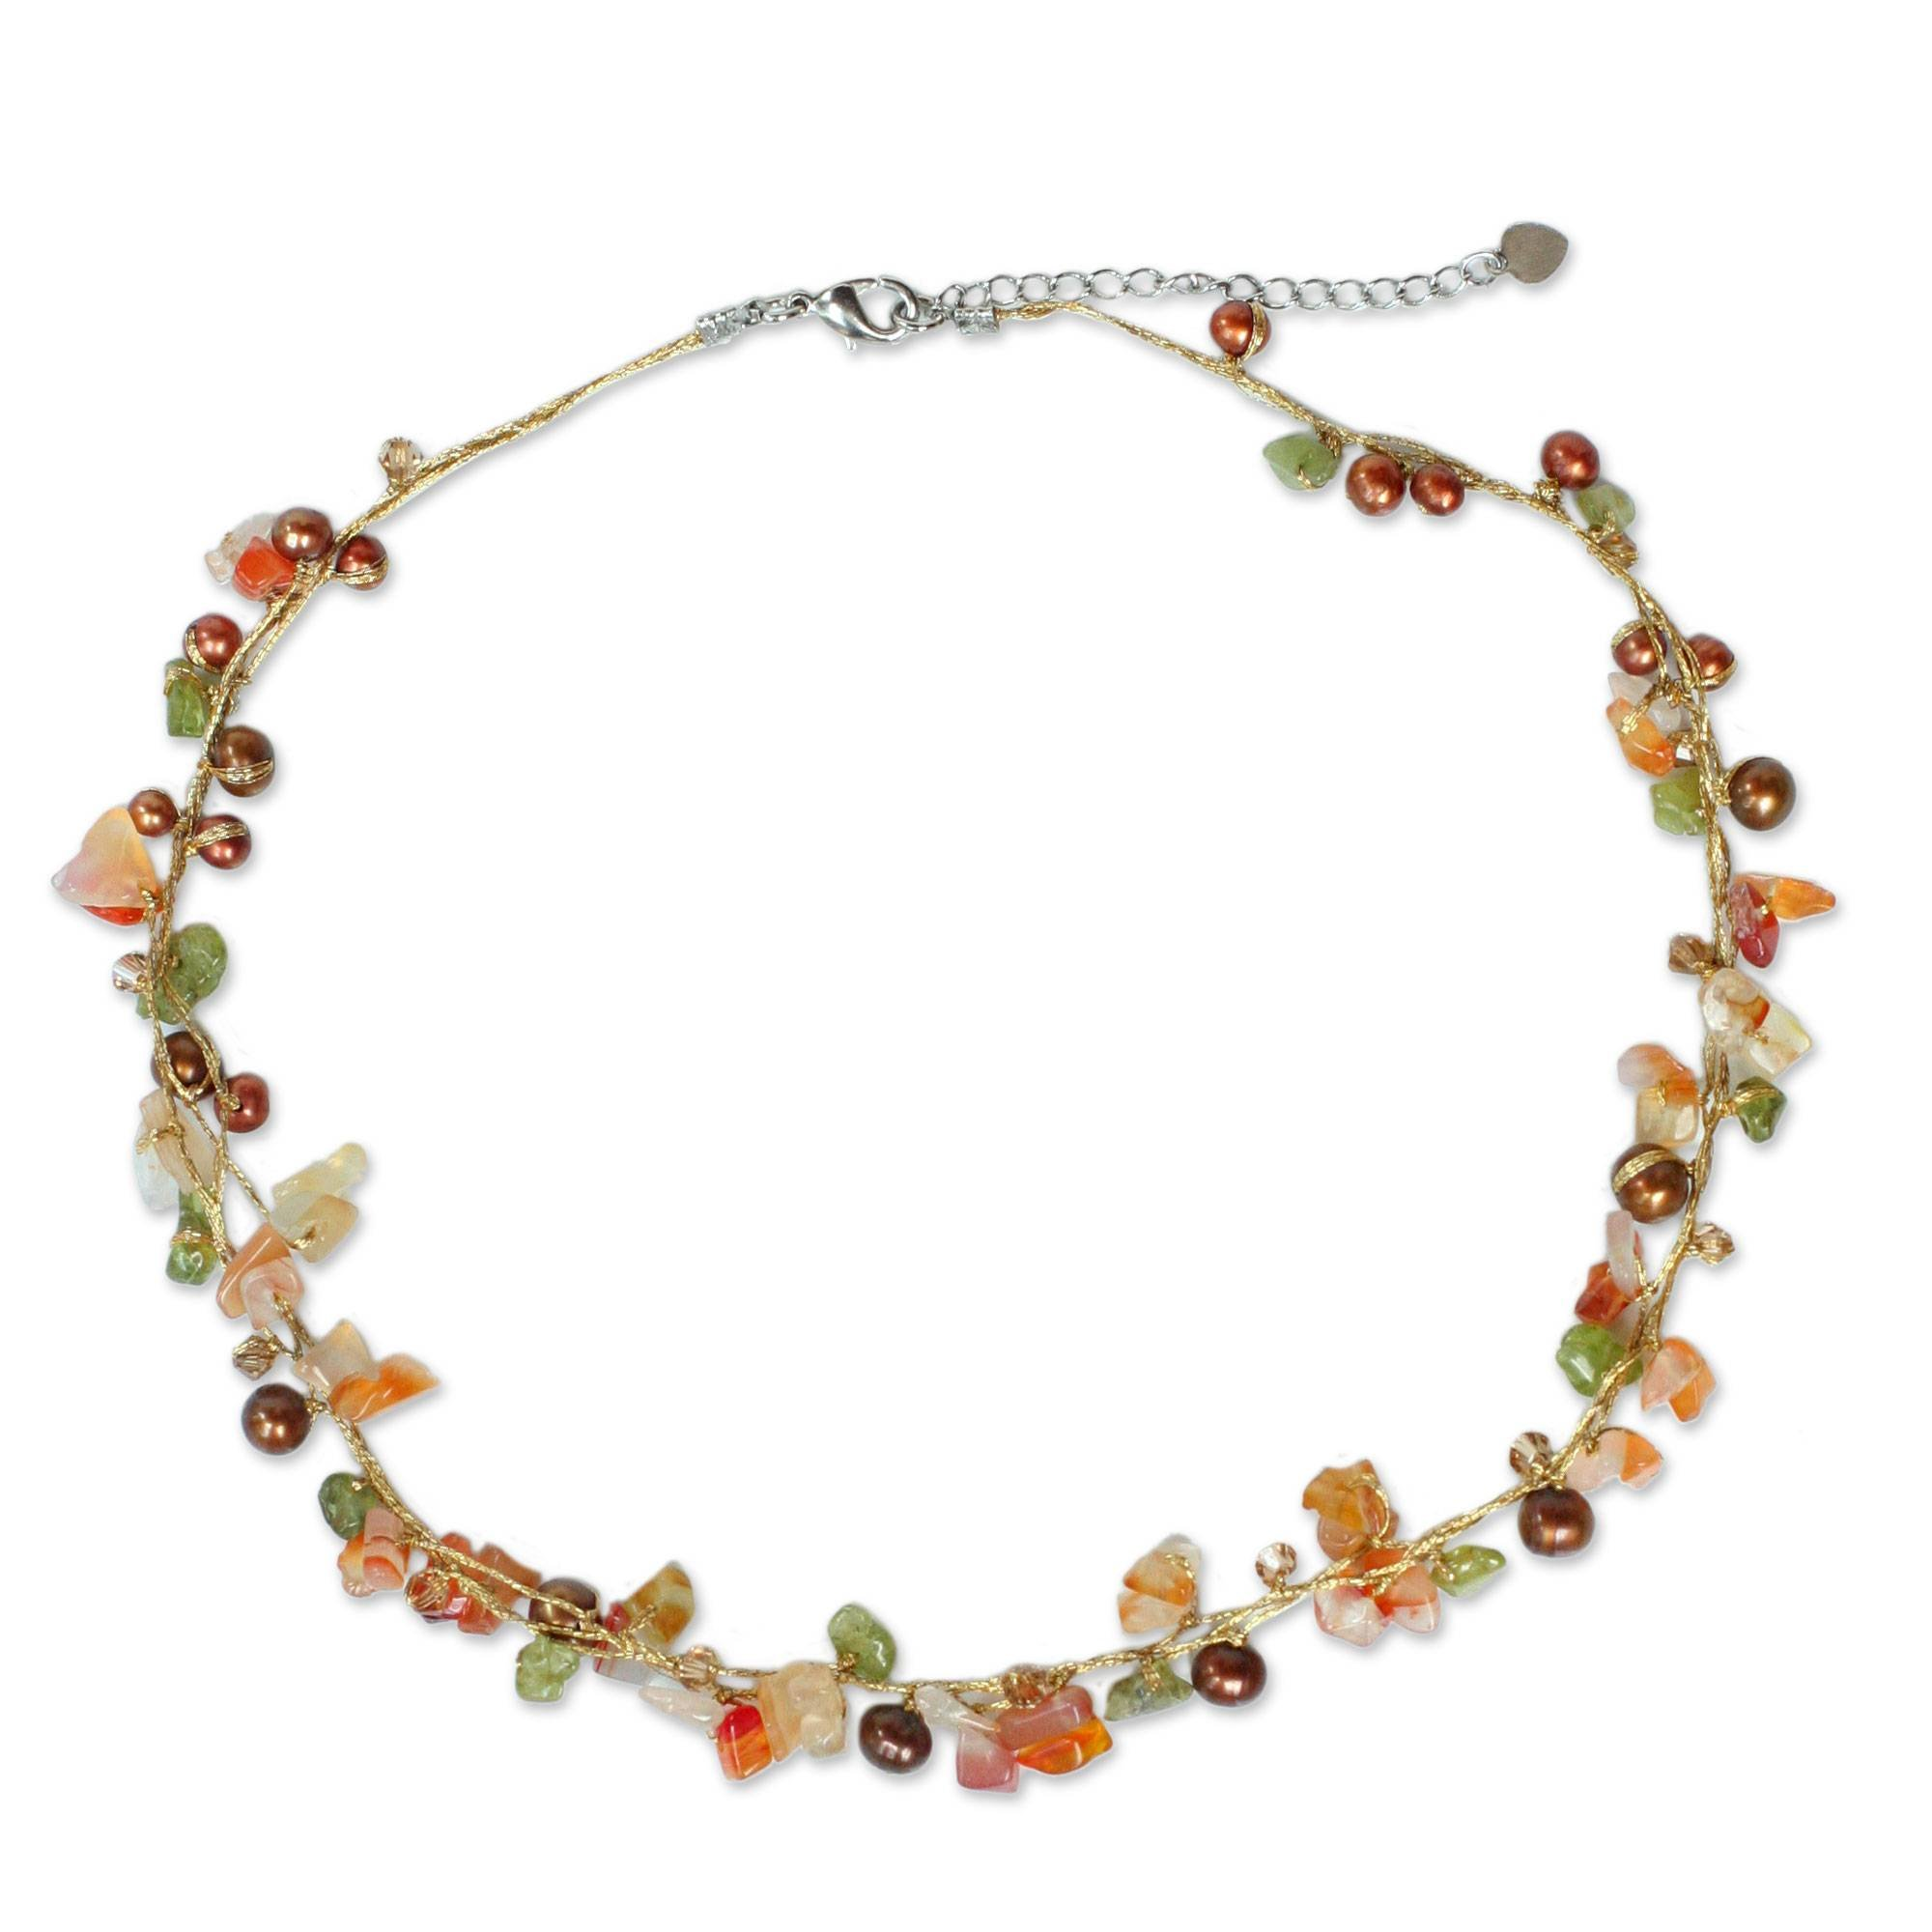 NOVICA Dyed Freshwater Cultured Pearl Necklace with Carnelian and Peridot Stones, 16.25'' 'Tropical Elite'